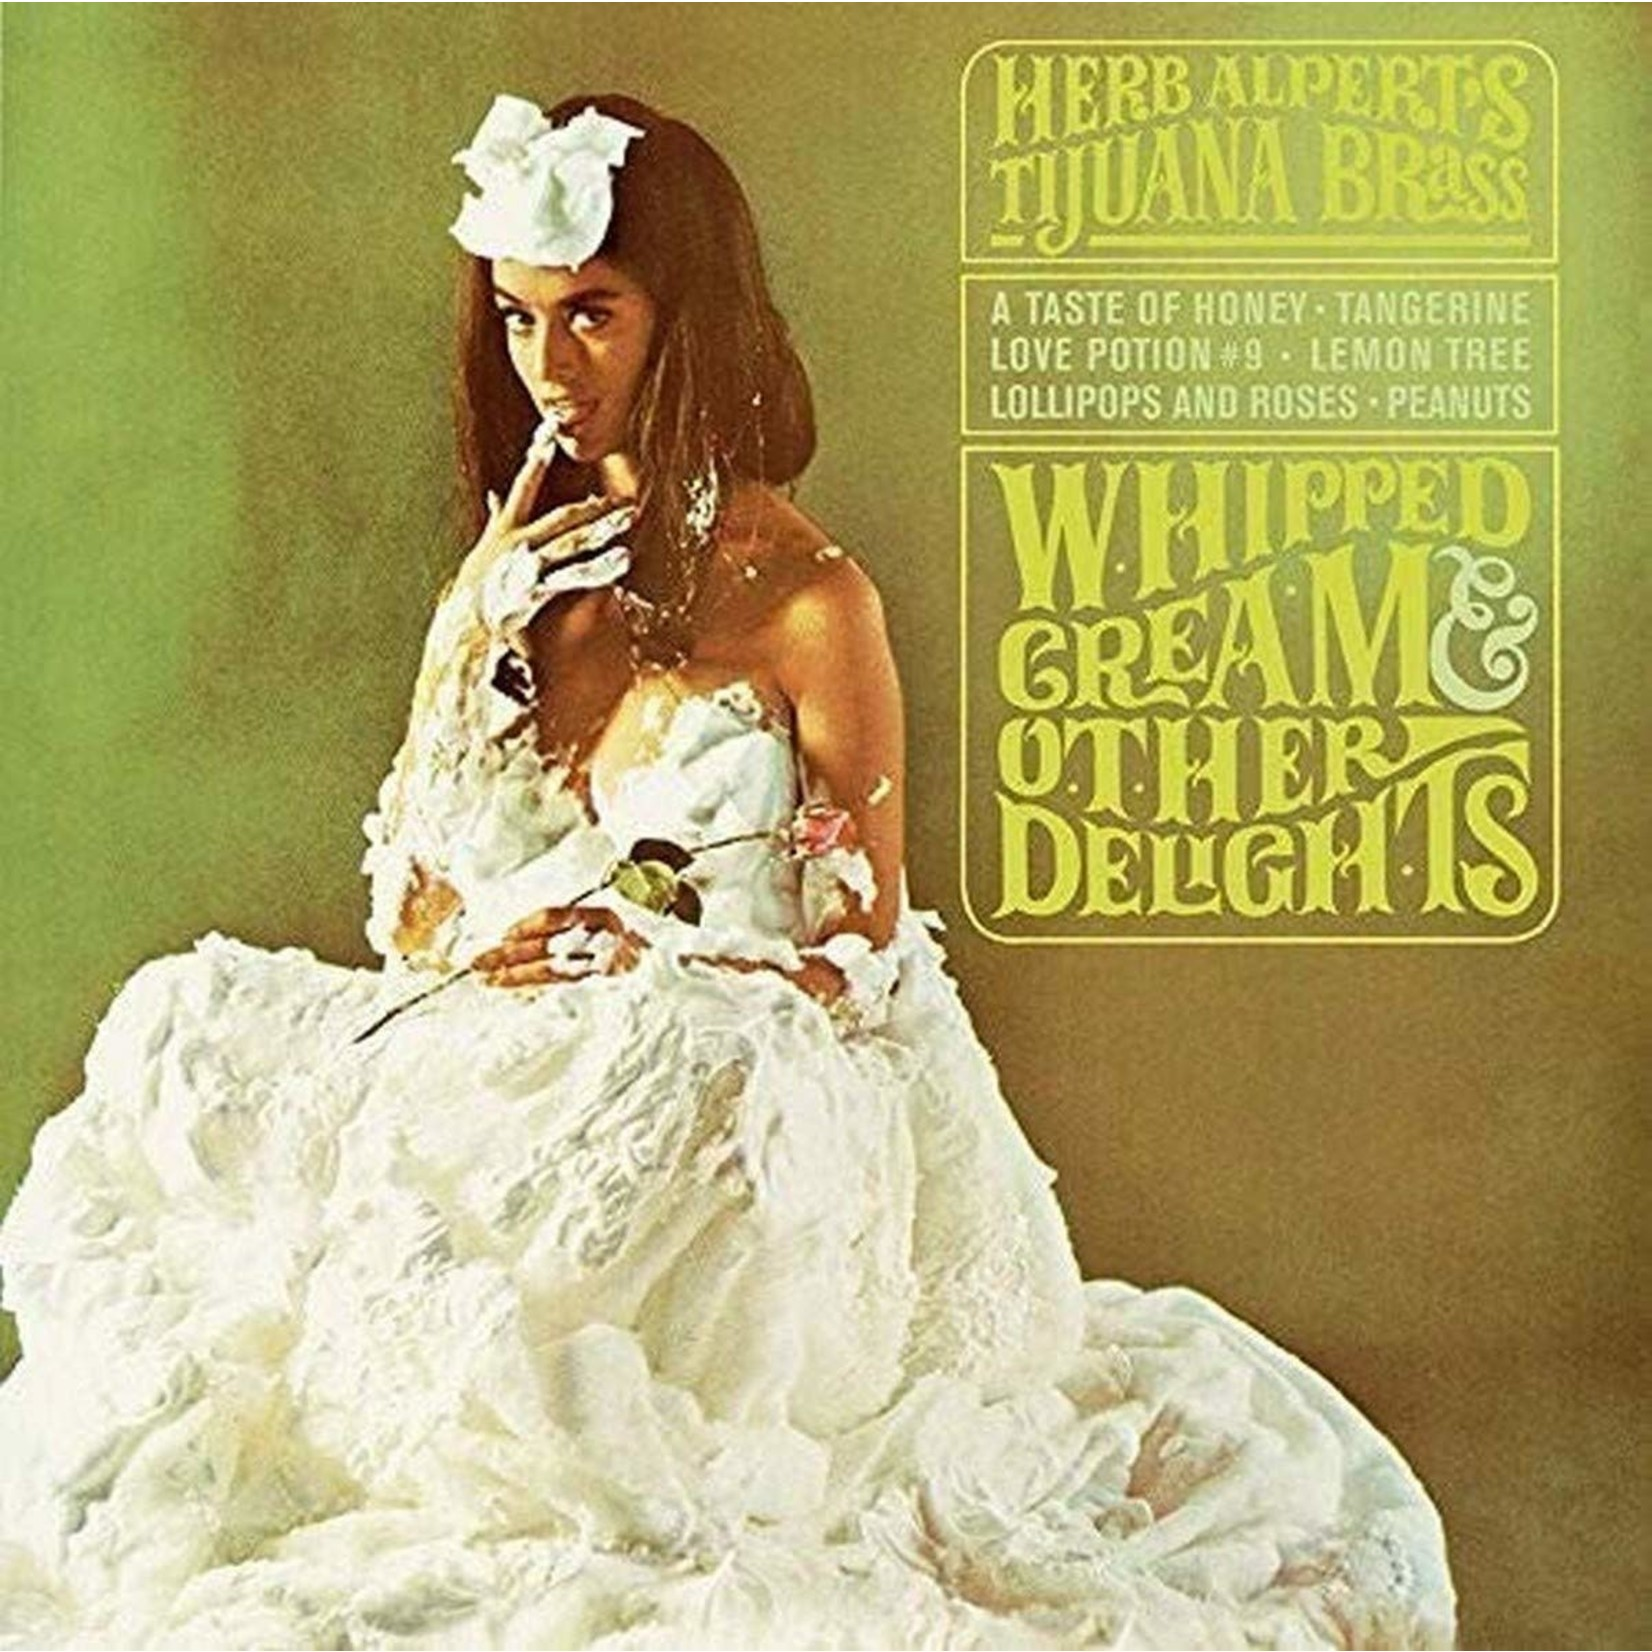 [Vintage] Alpert, Herb: Whipped Cream & Other Delights